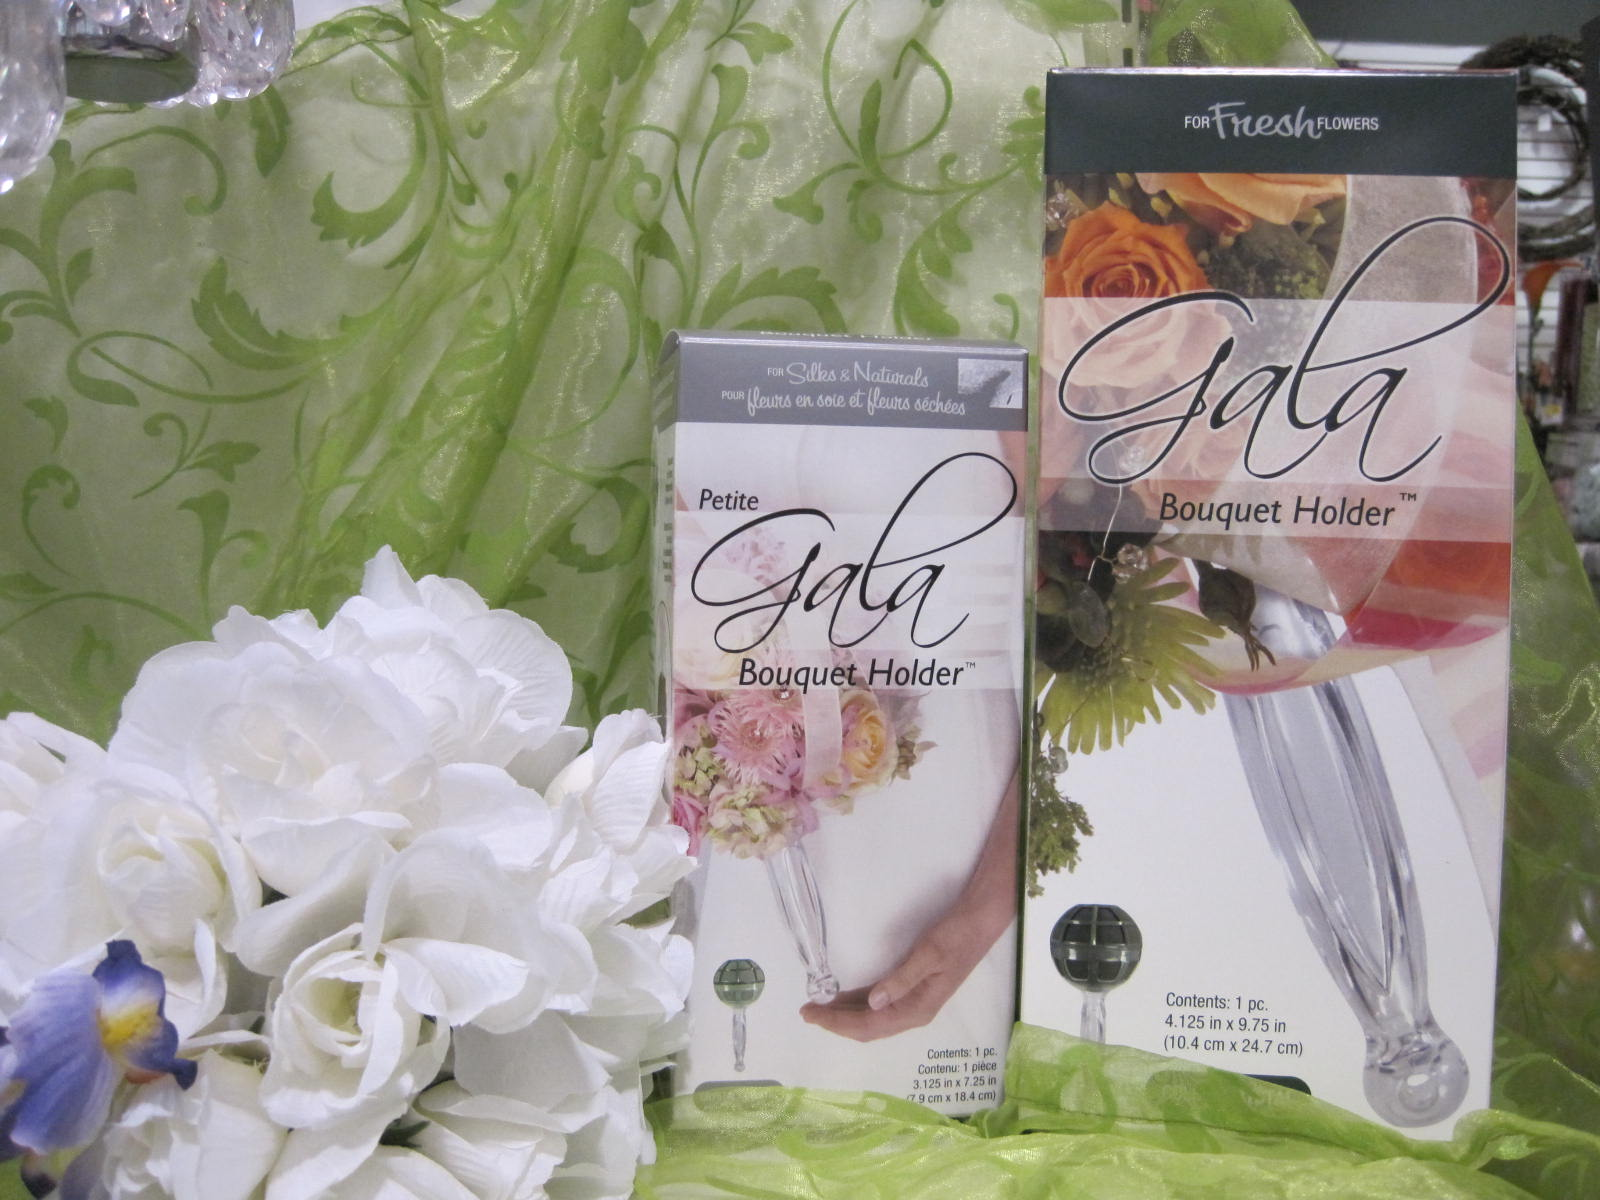 Sierras gala bouquet holder sierras crafts would like to introduce you to our gala bouquet holders design your hanging floral special events kissing balls and weddings for fresh izmirmasajfo